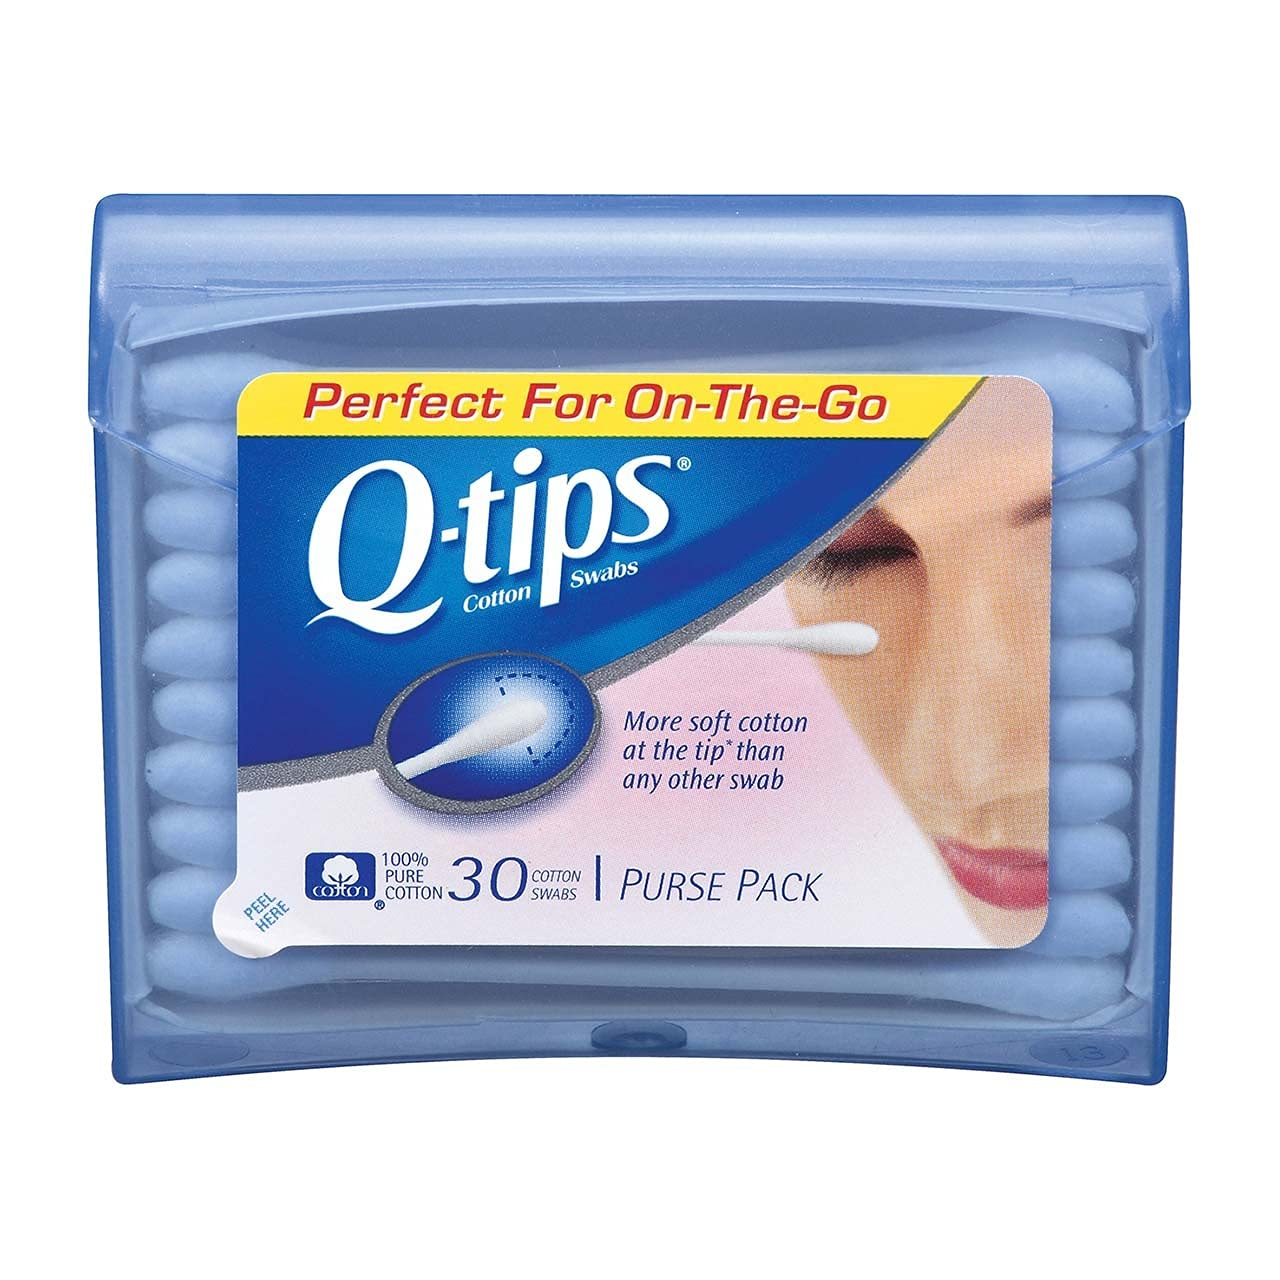 Q-tips Swabs Purse Pack 30 Each Free shipping At the price of surprise anywhere in the nation 4 of